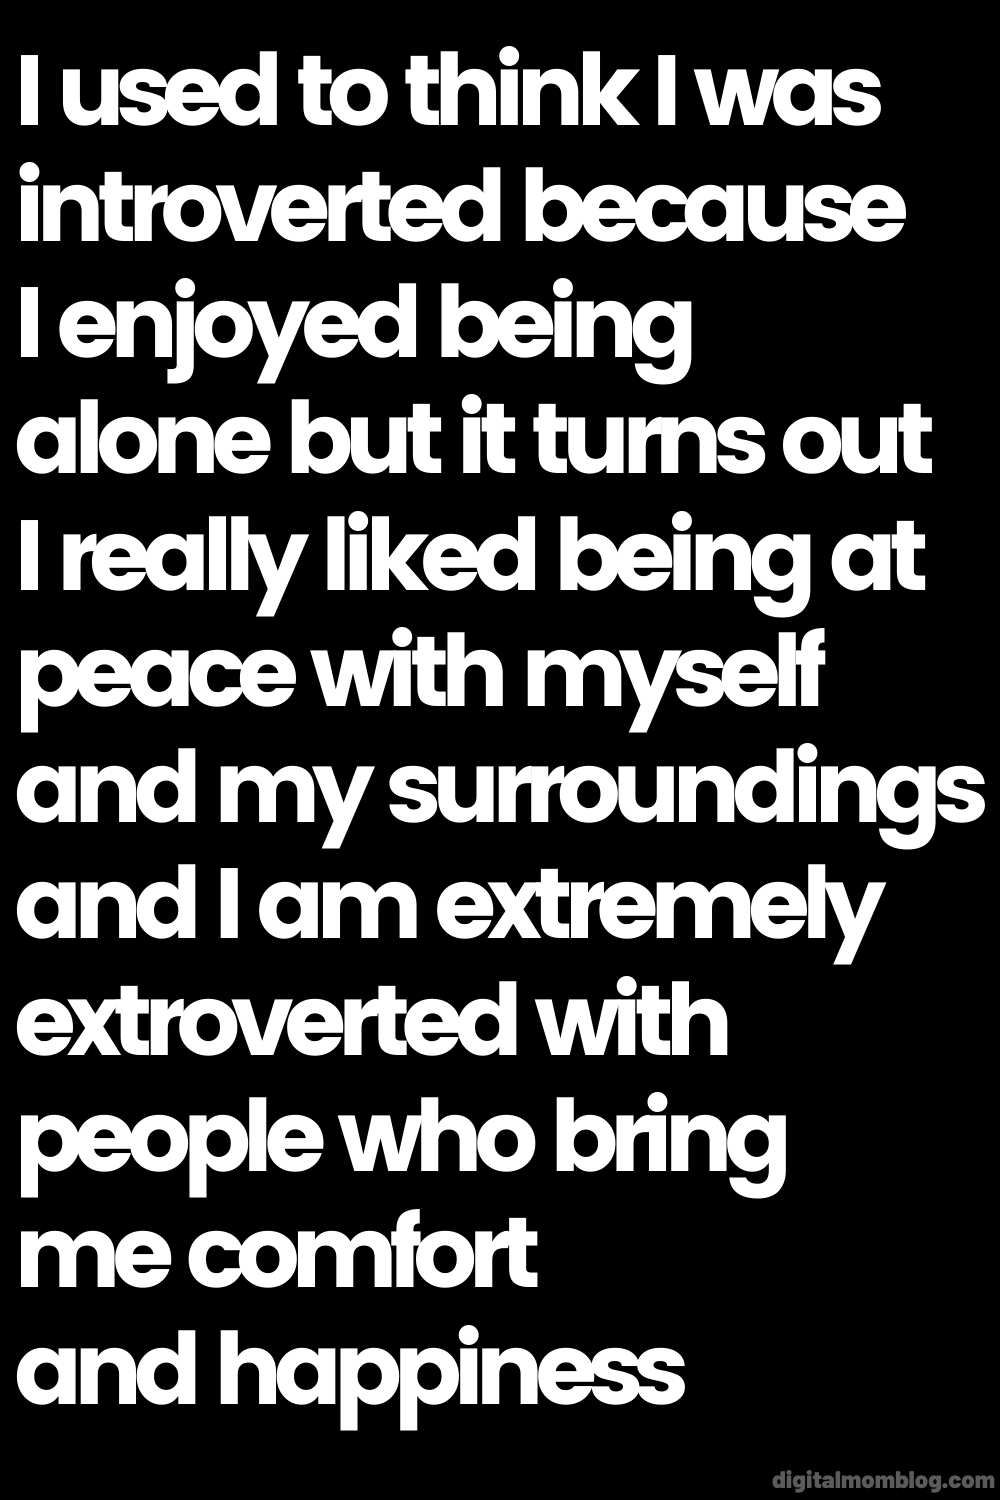 introverted extrovert quote - I used to think I was introverted because I enjoyed being alone but it turns out I really liked being at peace with myself and my surroundings and I am extremely extroverted with people who bring me comfort and happiness